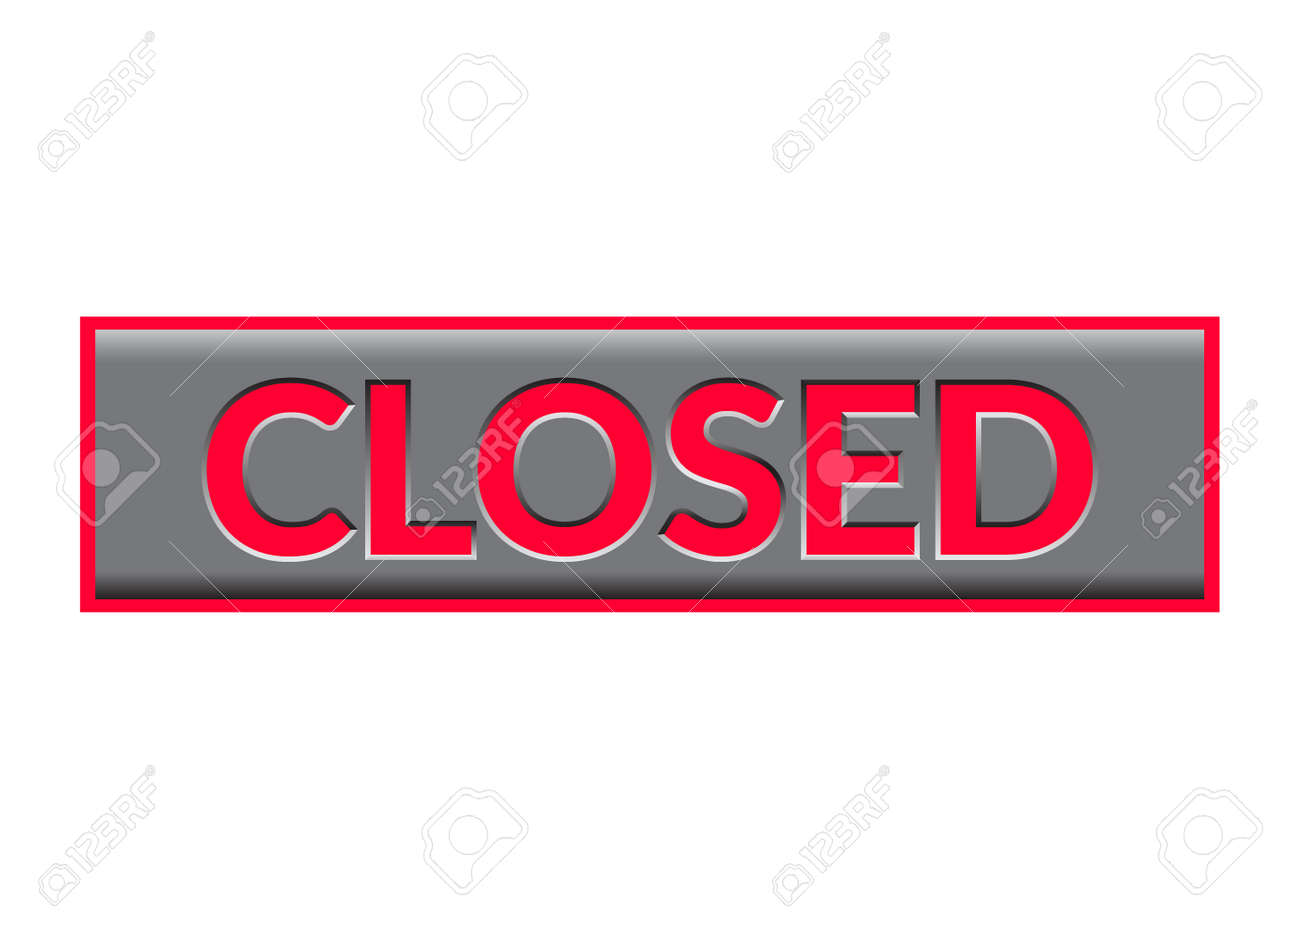 Closed Sign Neon Bright Red Print Symbol For Store Shop Cafe